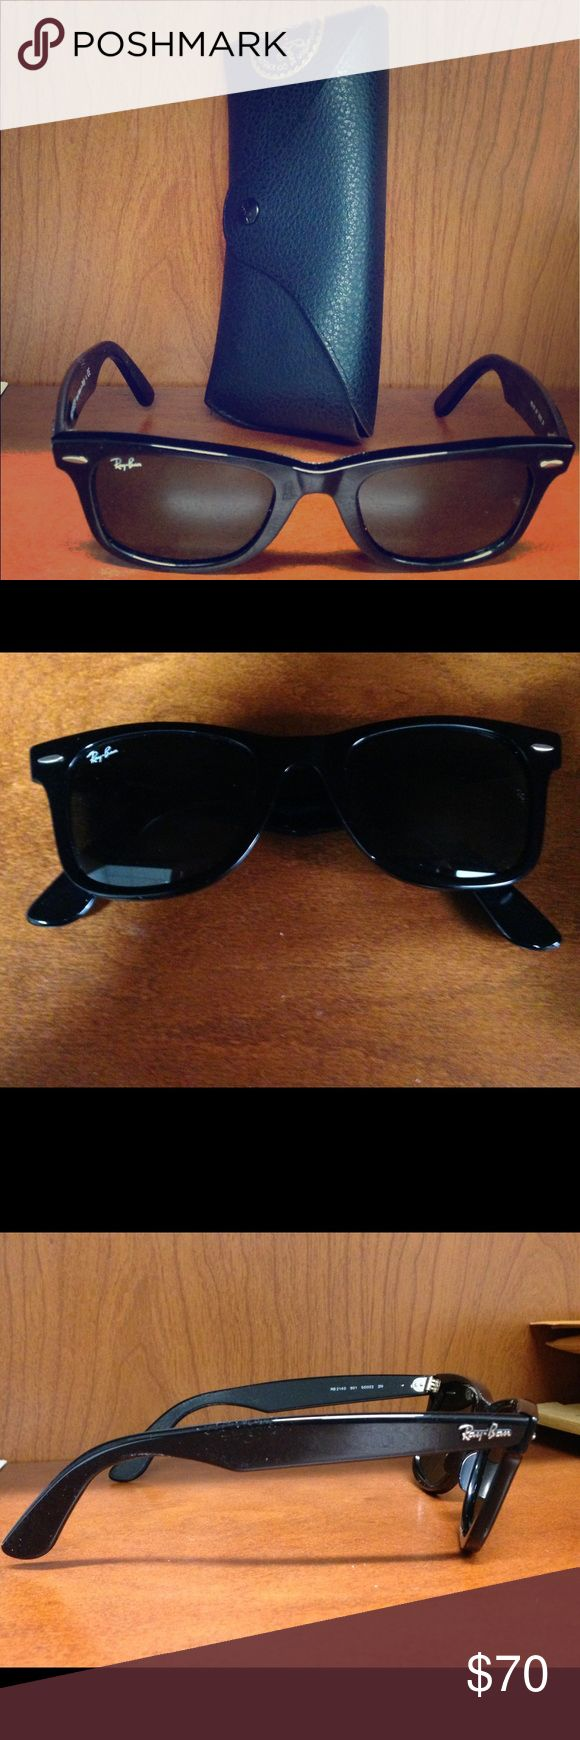 Ray Ban Wayfarer sunglasses Classic black retro Ray Ban Wayfarer sunglasses, NWOT, comes with case, cleaning cloth, and original promotional booklets. Ray-Ban Accessories Sunglasses